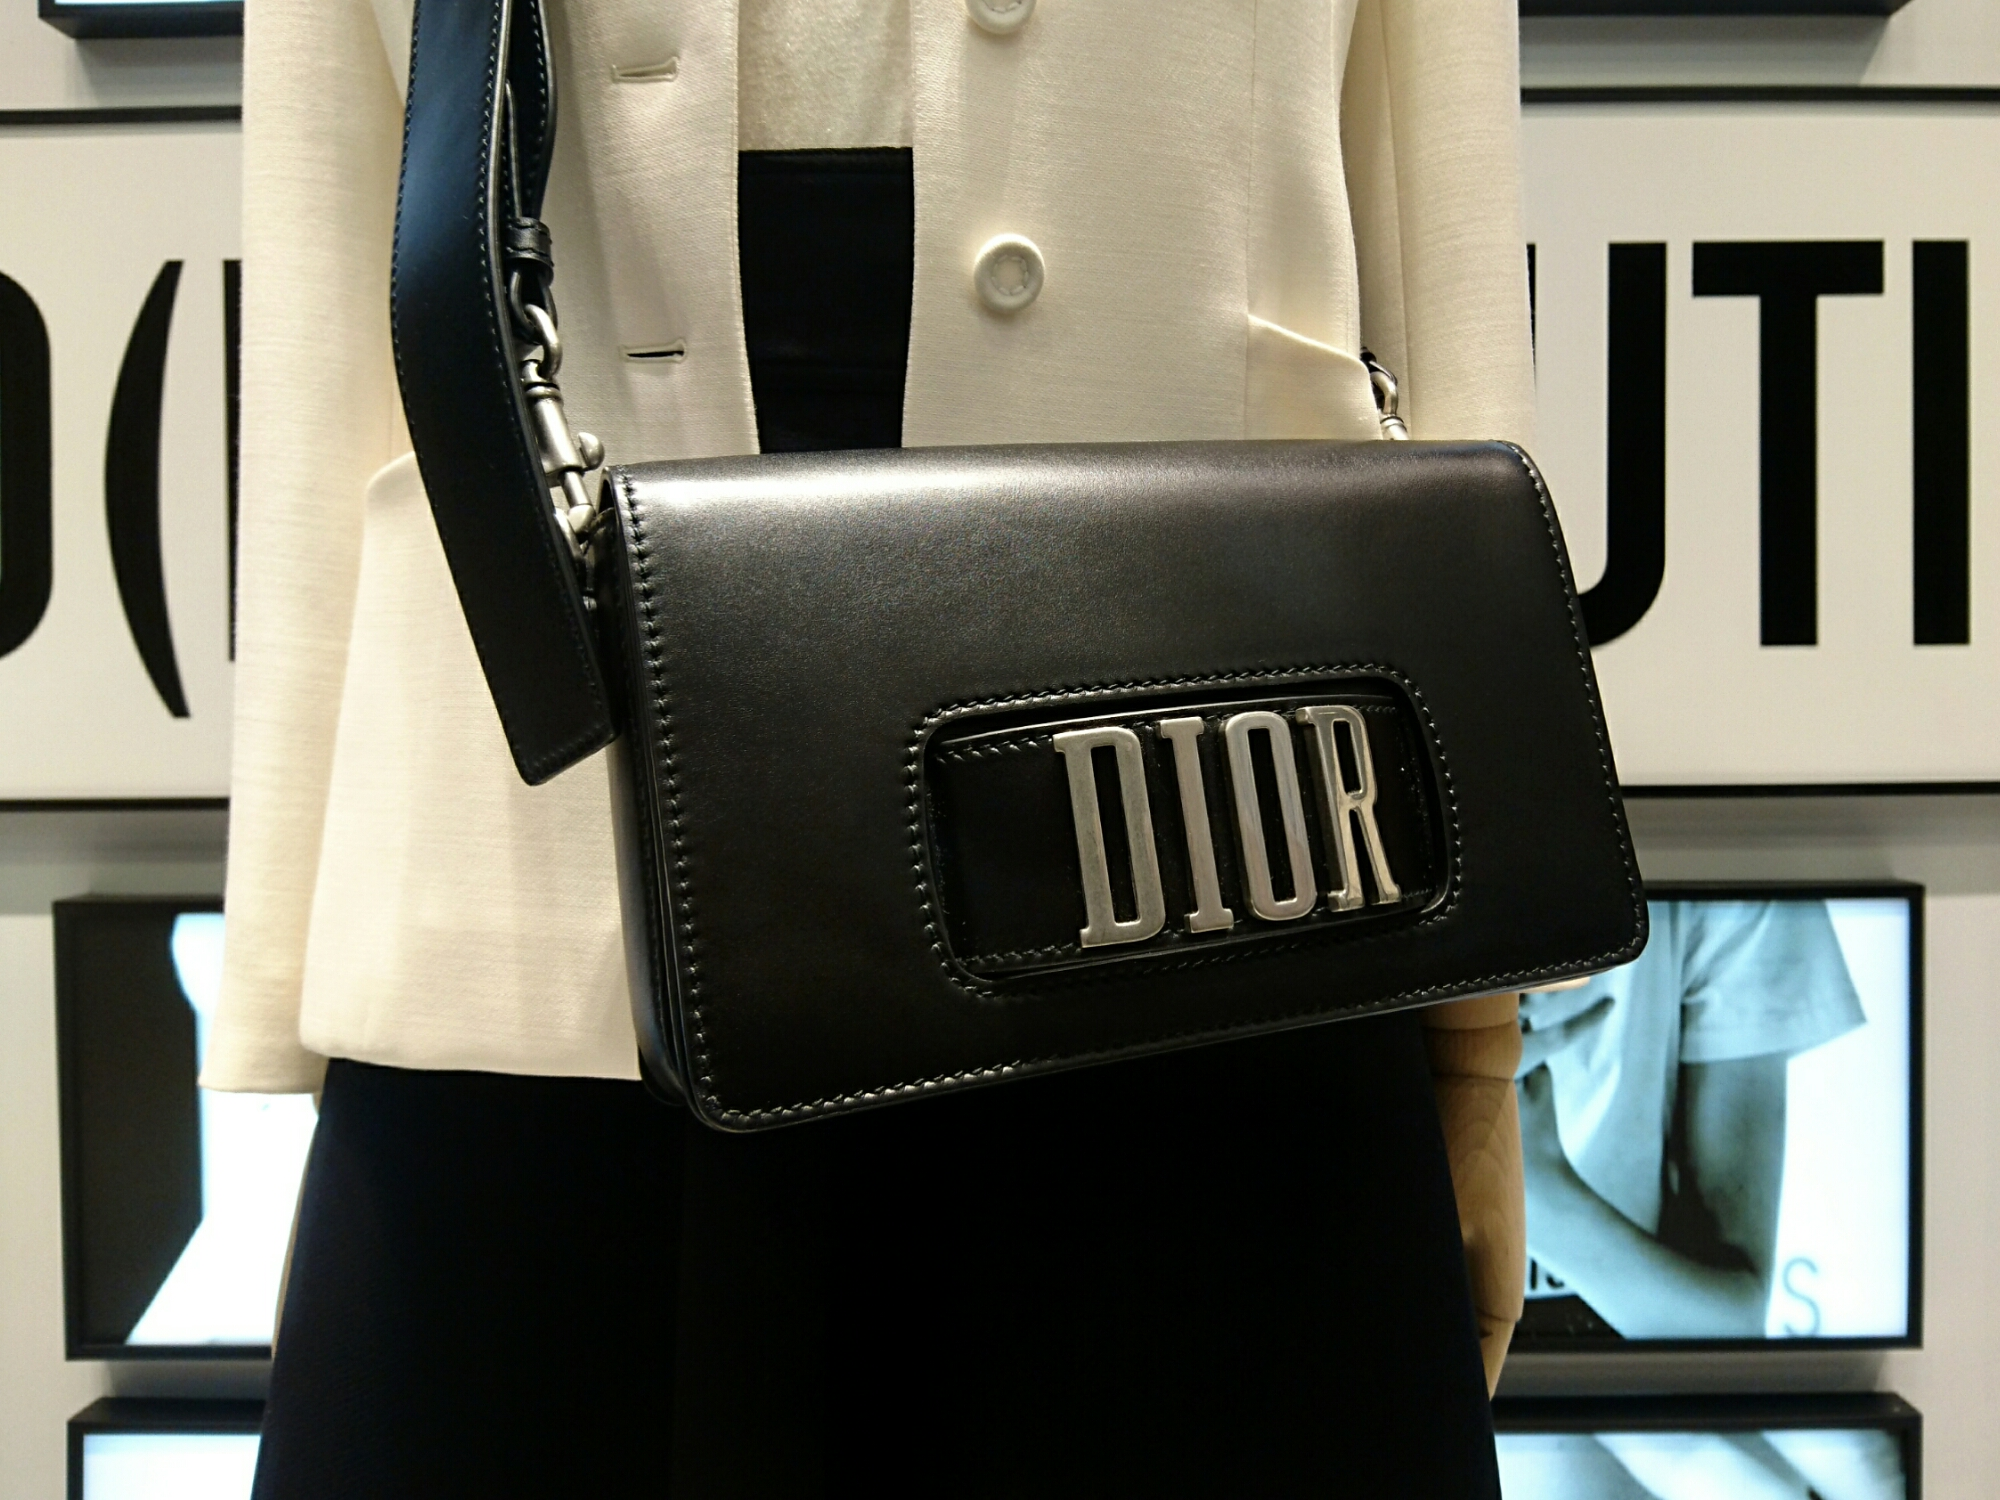 0305f49524f ... this afternoon to acquaint ourselves with the debut collection of Maria  Grazia Chiuri brought us face to face with the Dio(r)evolution calfskin bags